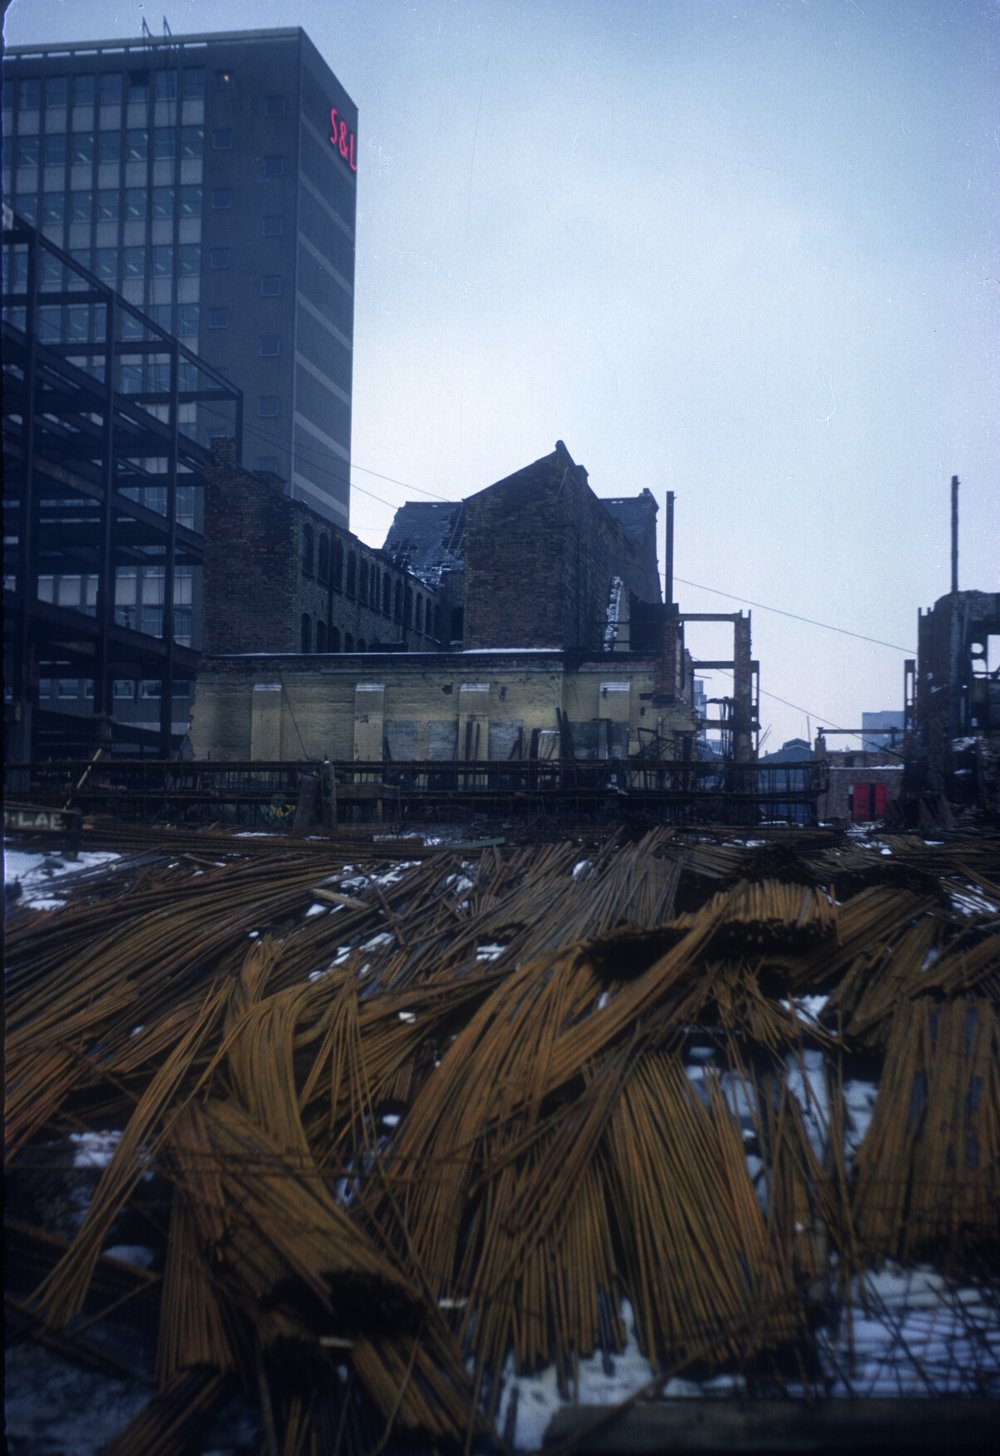 Gun Quarter (In decay). Stewarts and Lloyds Offices (Snow Hill. Construction across Weanan Street) View point Whittall Street, Opposite St. Mary's Row. 16th February 1963